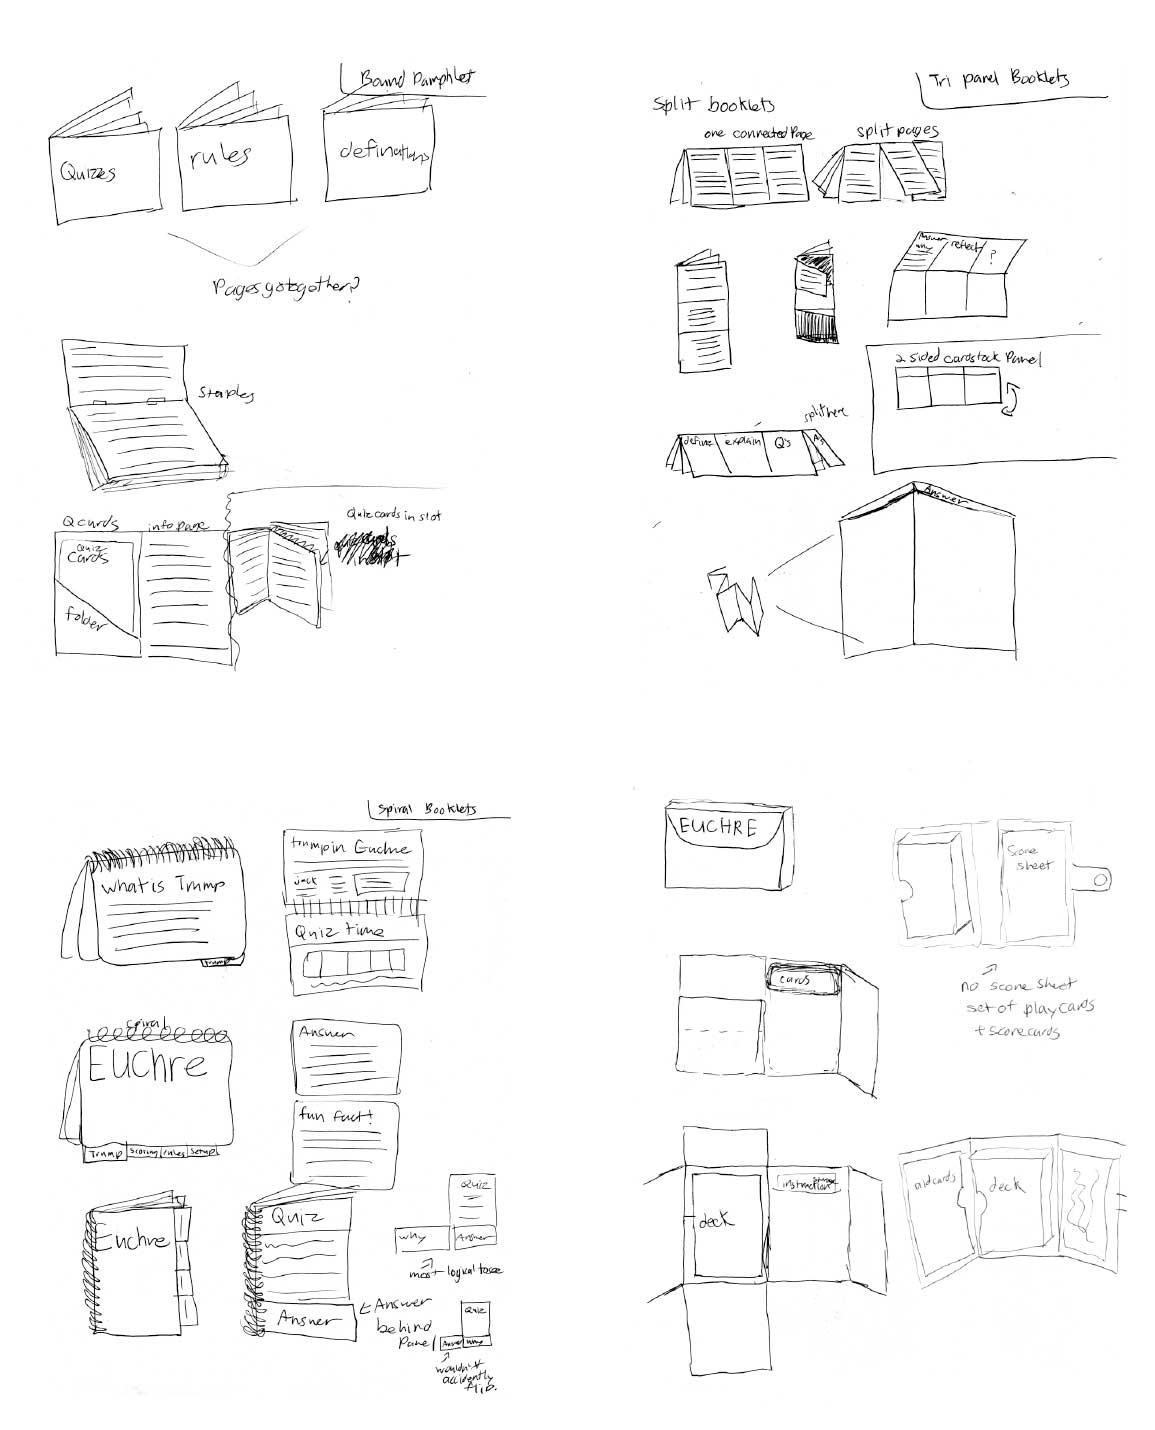 These are some our refined sketches for our packaging with instructions idea.